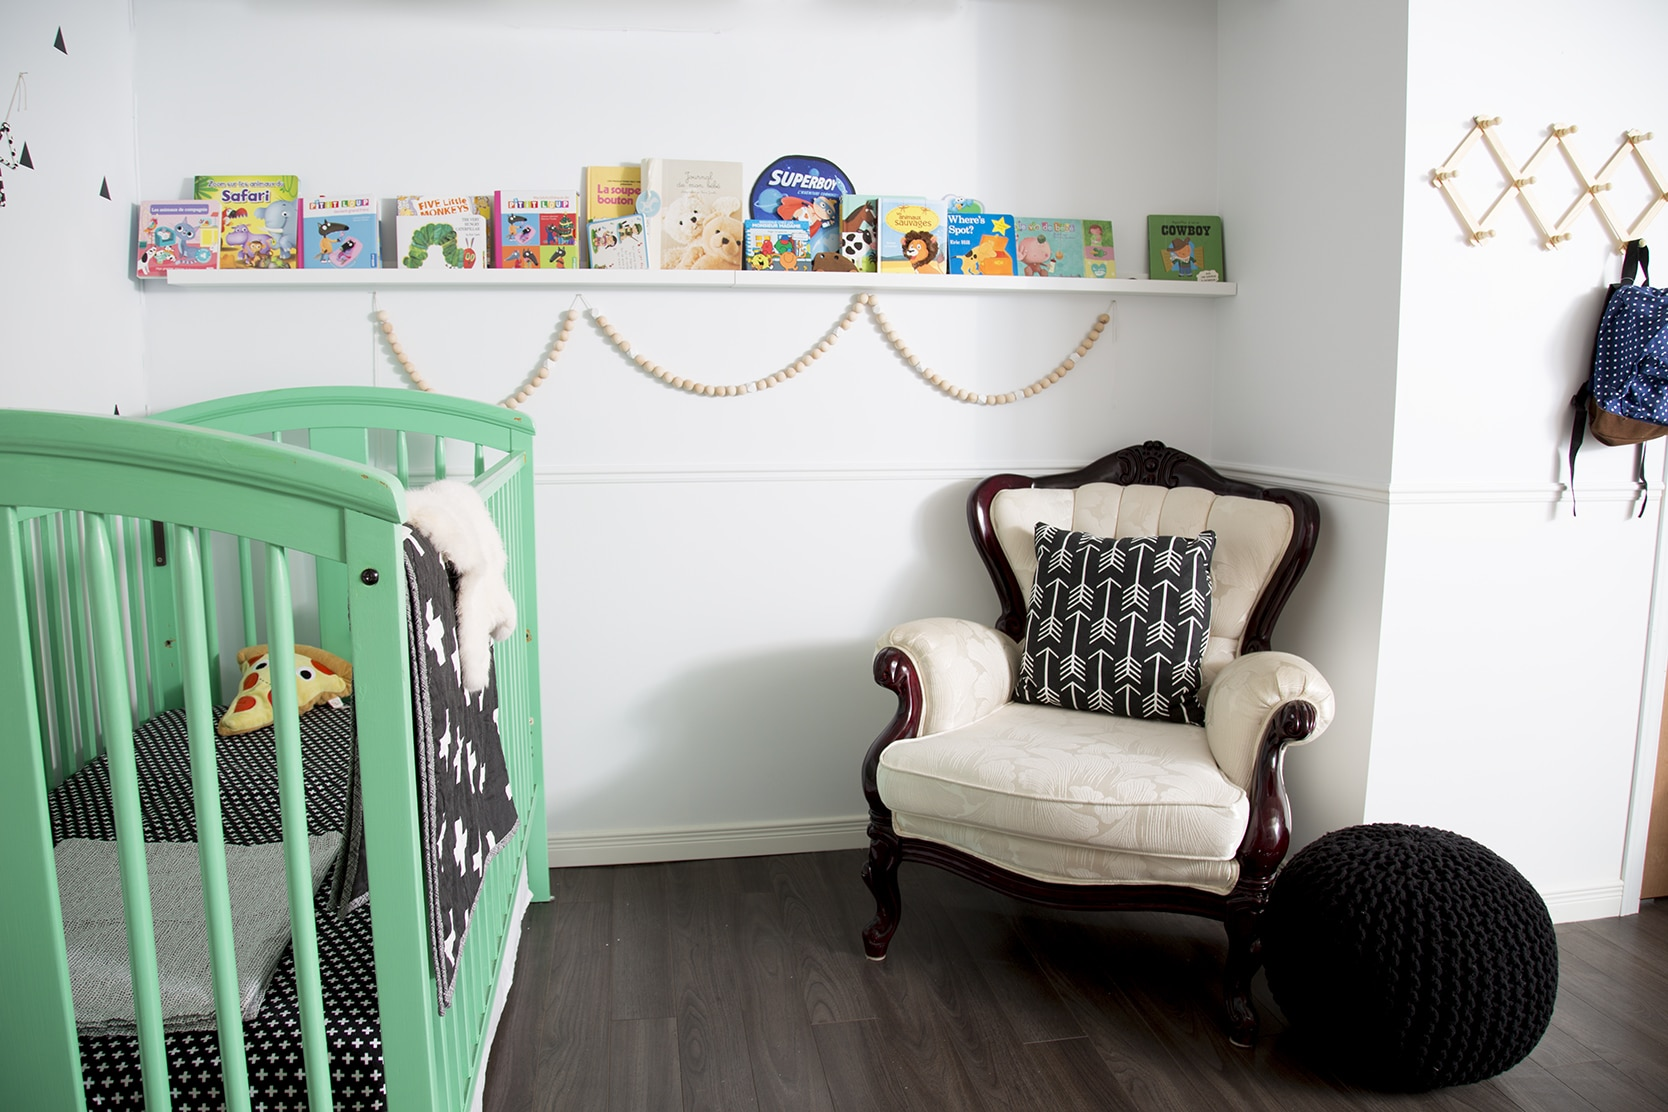 chambre de bébé garçon de style scandinave avec un berceau peint en vert et des touches de noir et blanc / Boy's nursery in a scandinavian style with a green crib and white, black and wood decoration pieces.